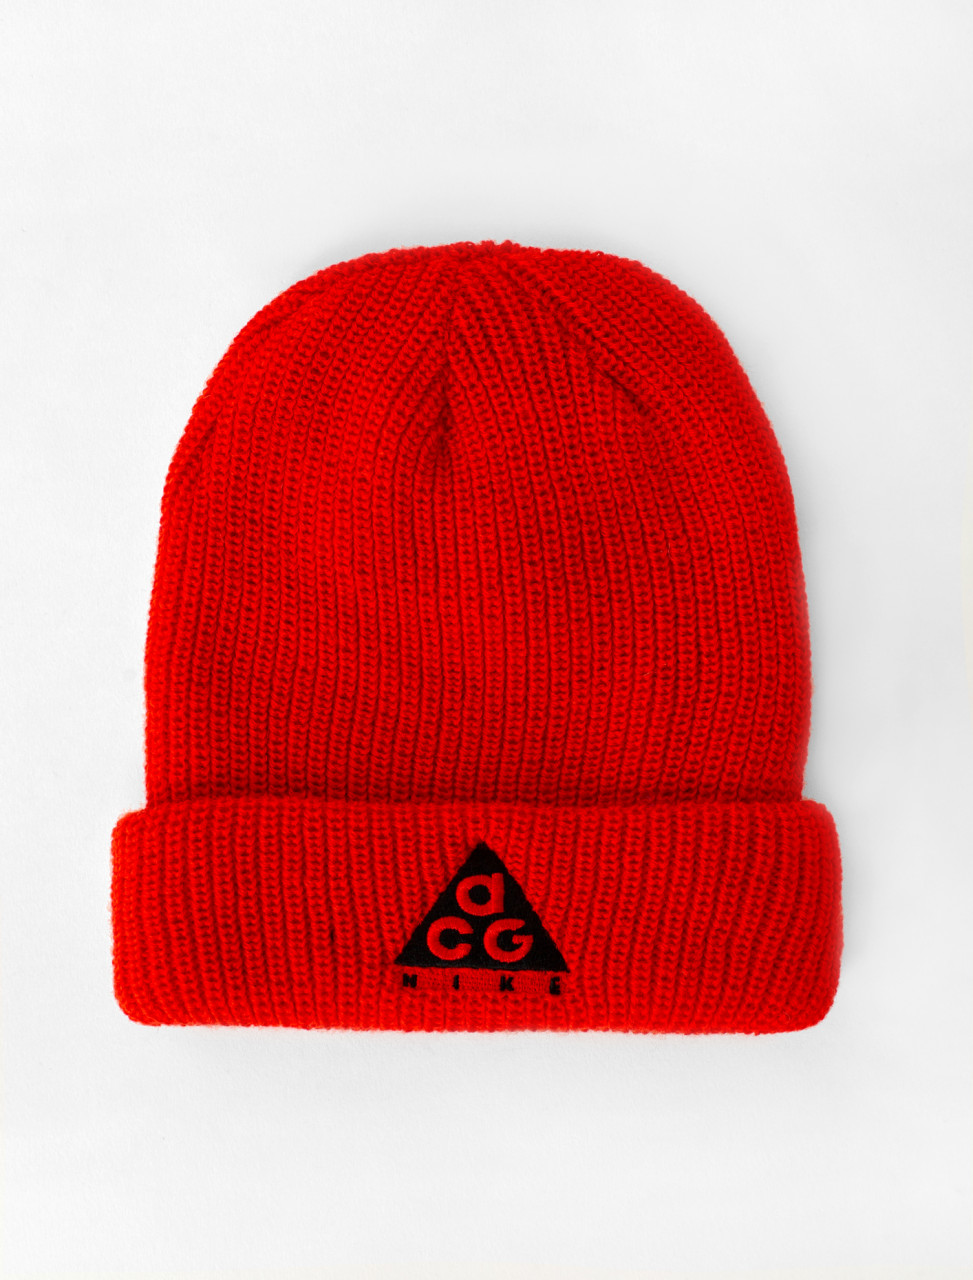 ACG Beanie in Habanero Red